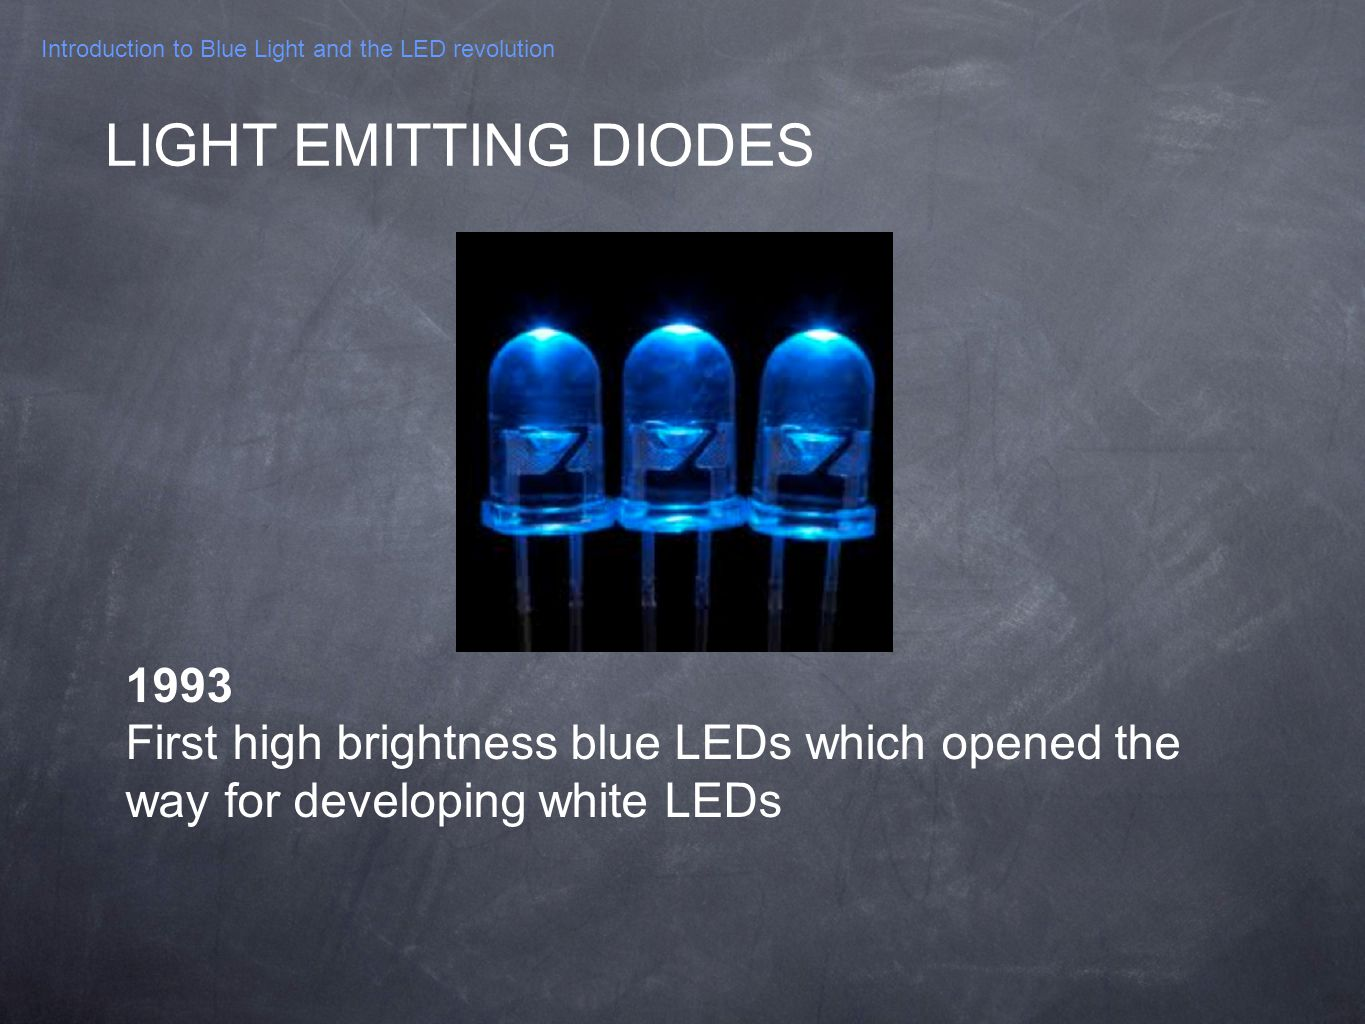 Introduction to Blue Light and the LED revolution